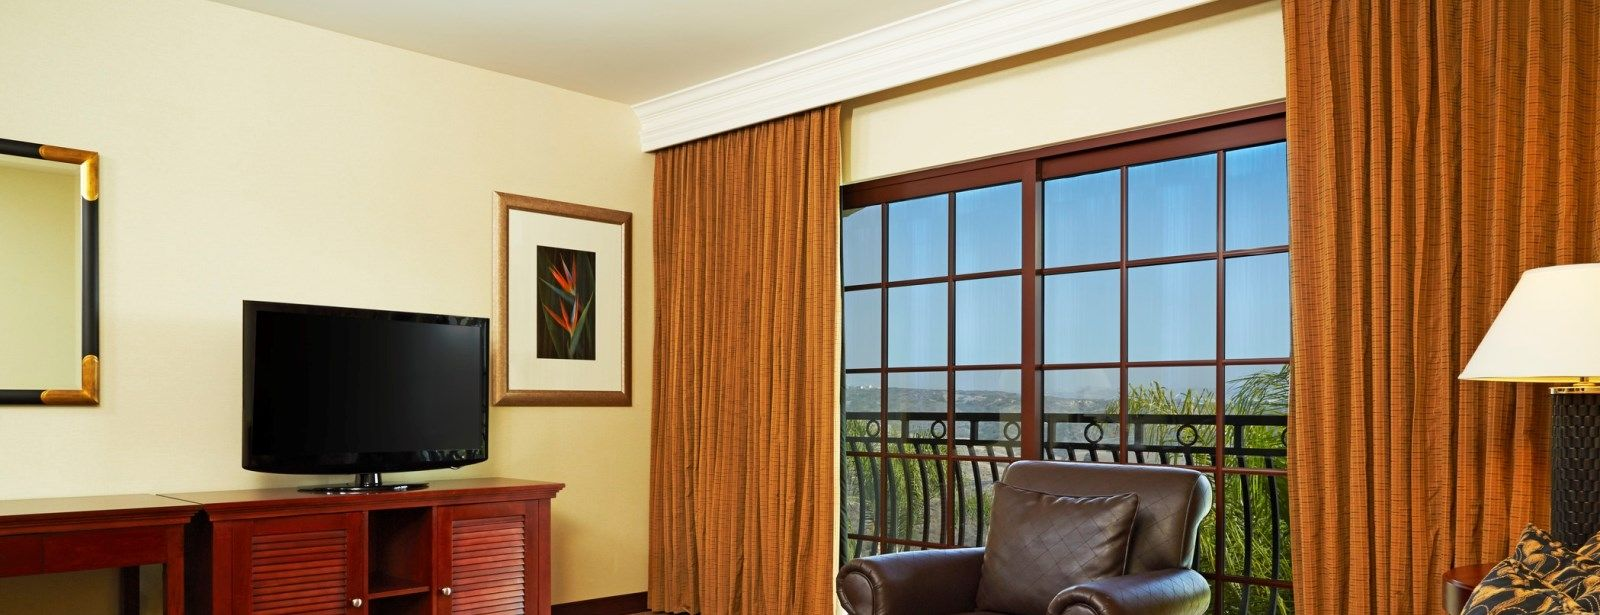 Executive Suites - Sheraton Carlsbad Resort & Spa